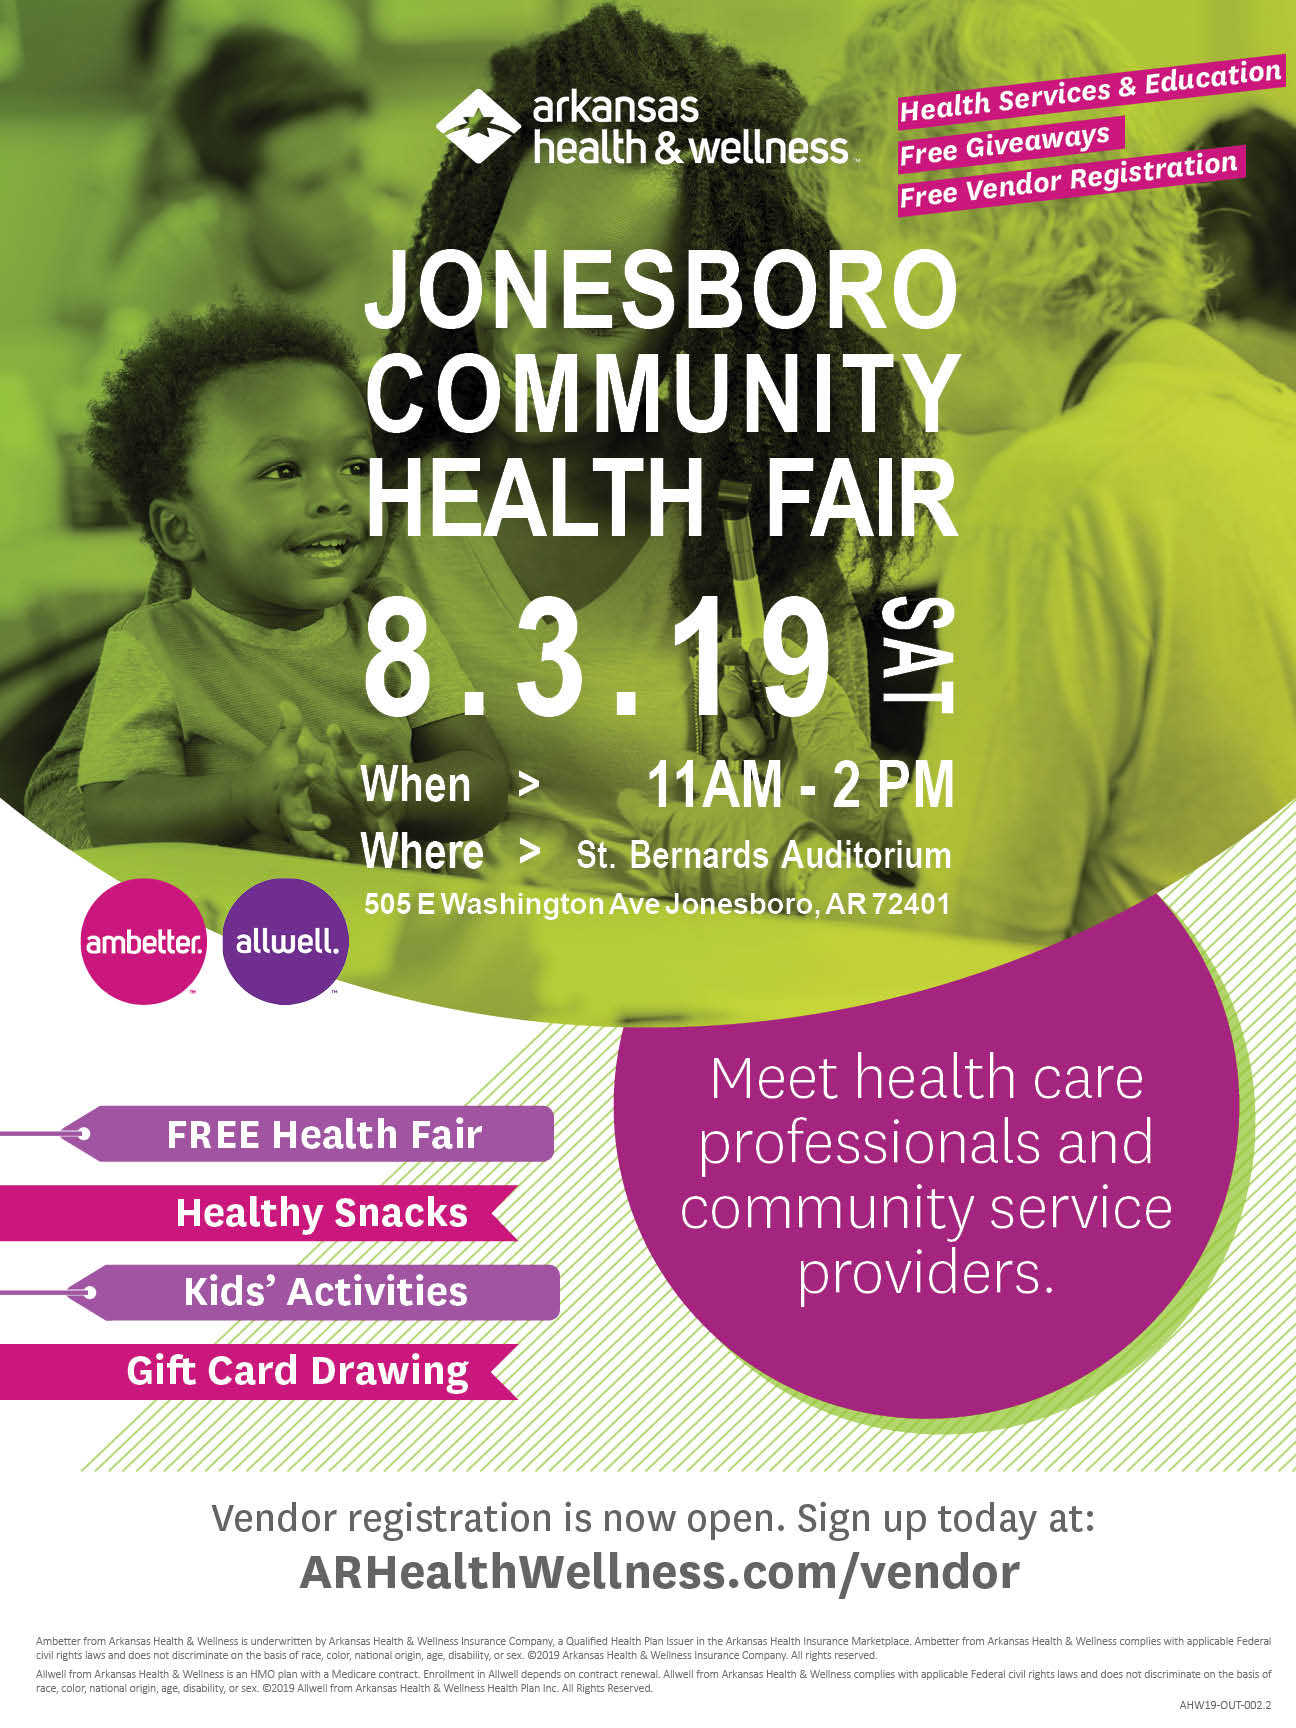 Jonesboro Community Health Fair